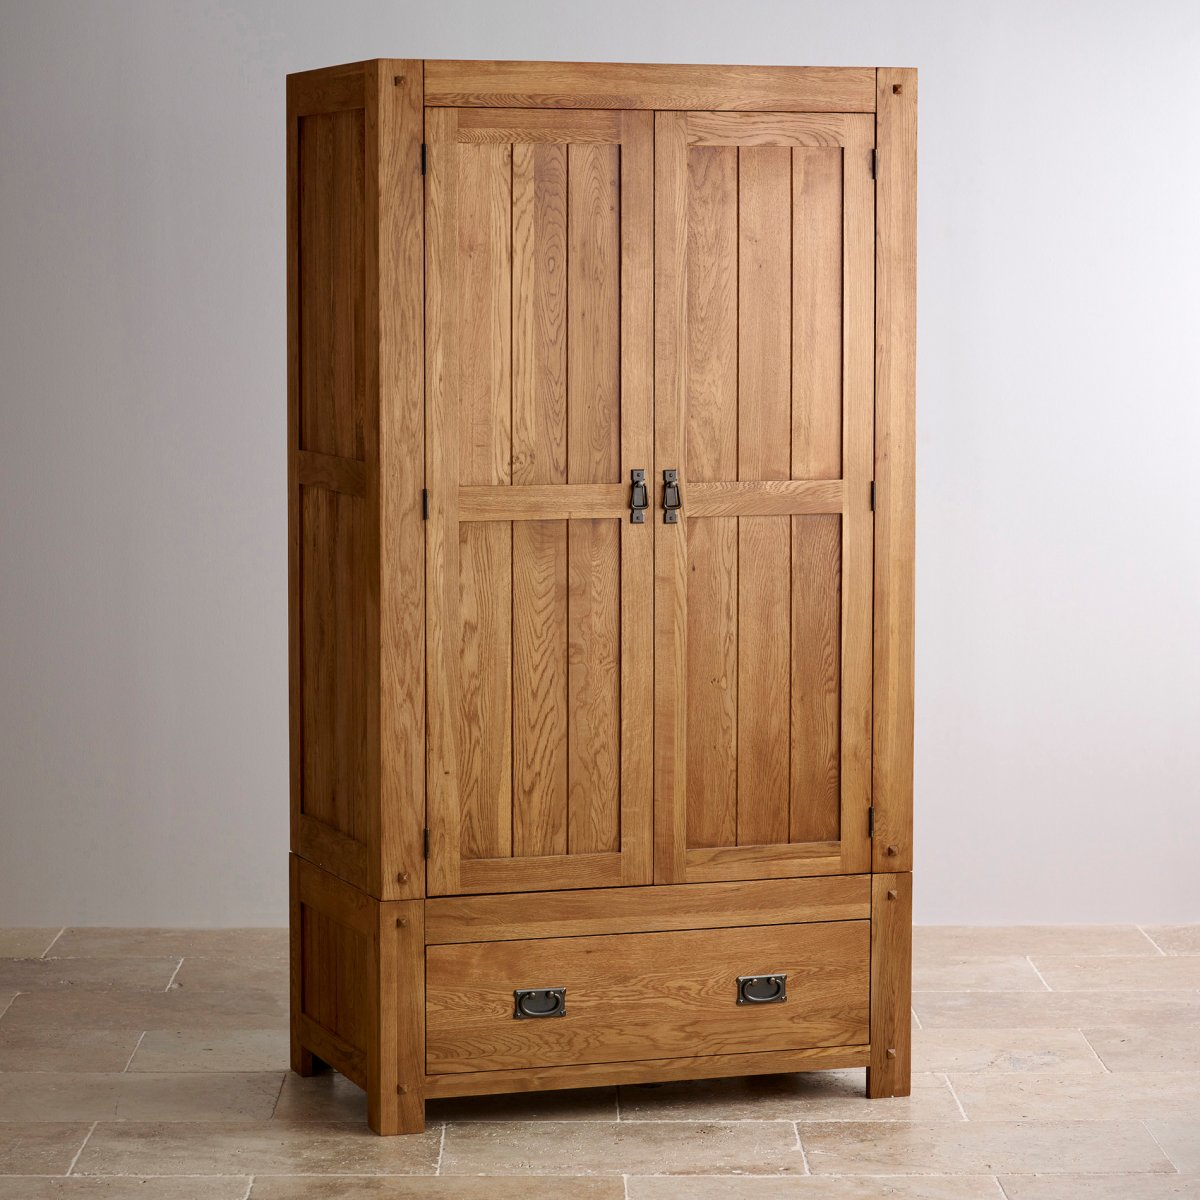 Quercus double wardrobe in rustic solid oak oak for Oak furniture land